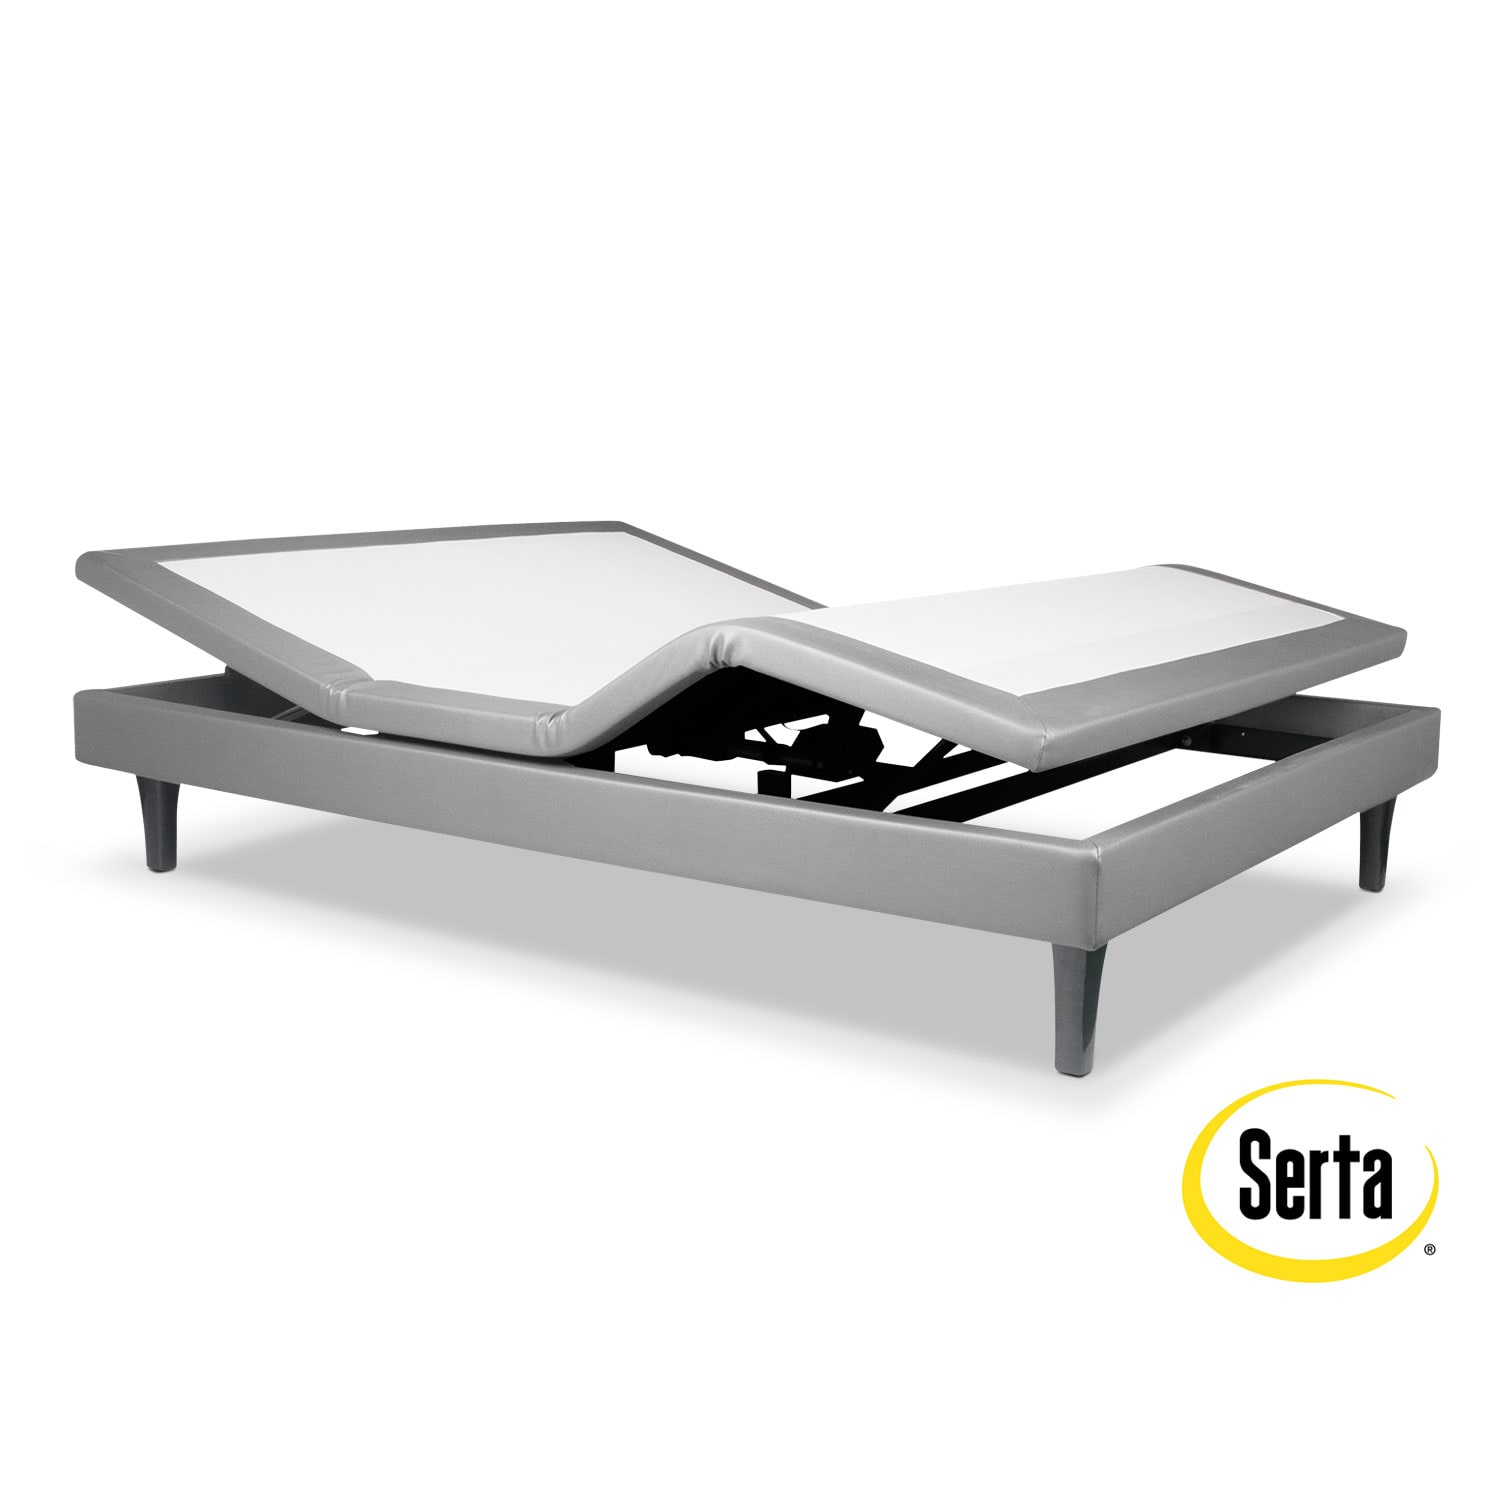 Mattresses and Bedding - Serta Motion Perfect III California King Adjustable Base